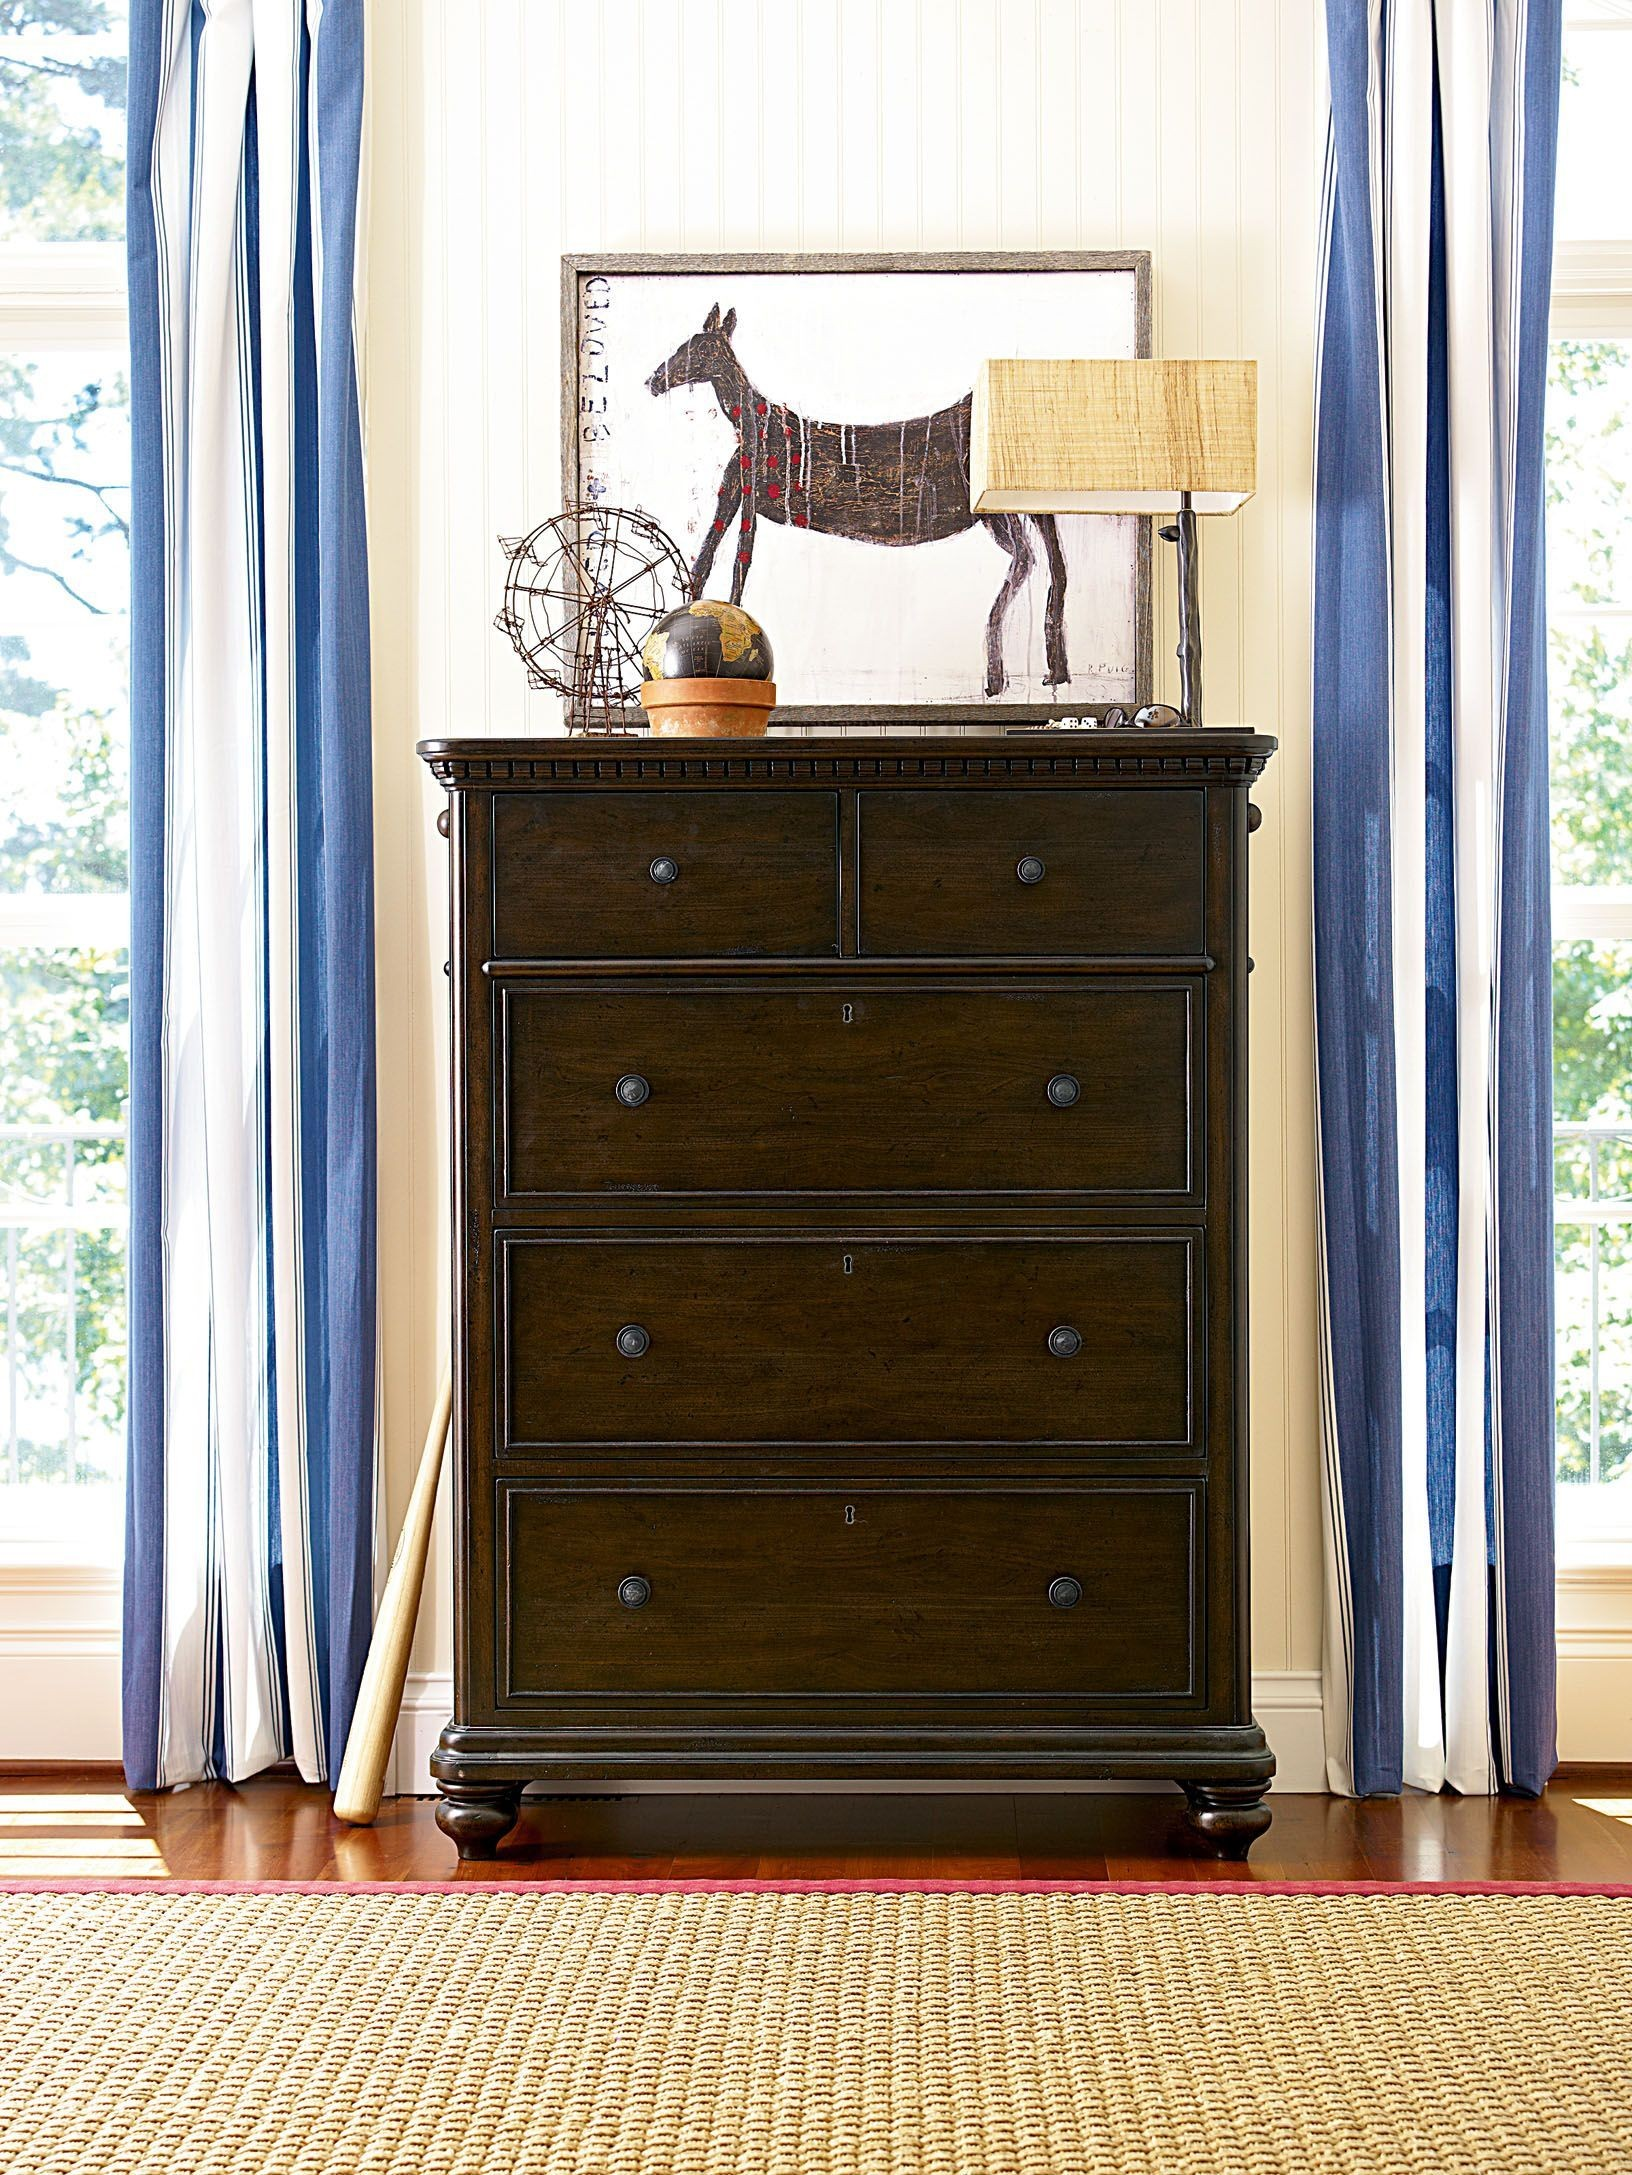 Paula deen guys smartstuff drawer chest from smart stuff 2391010 coleman furniture - Paula deen furniture for sale ...